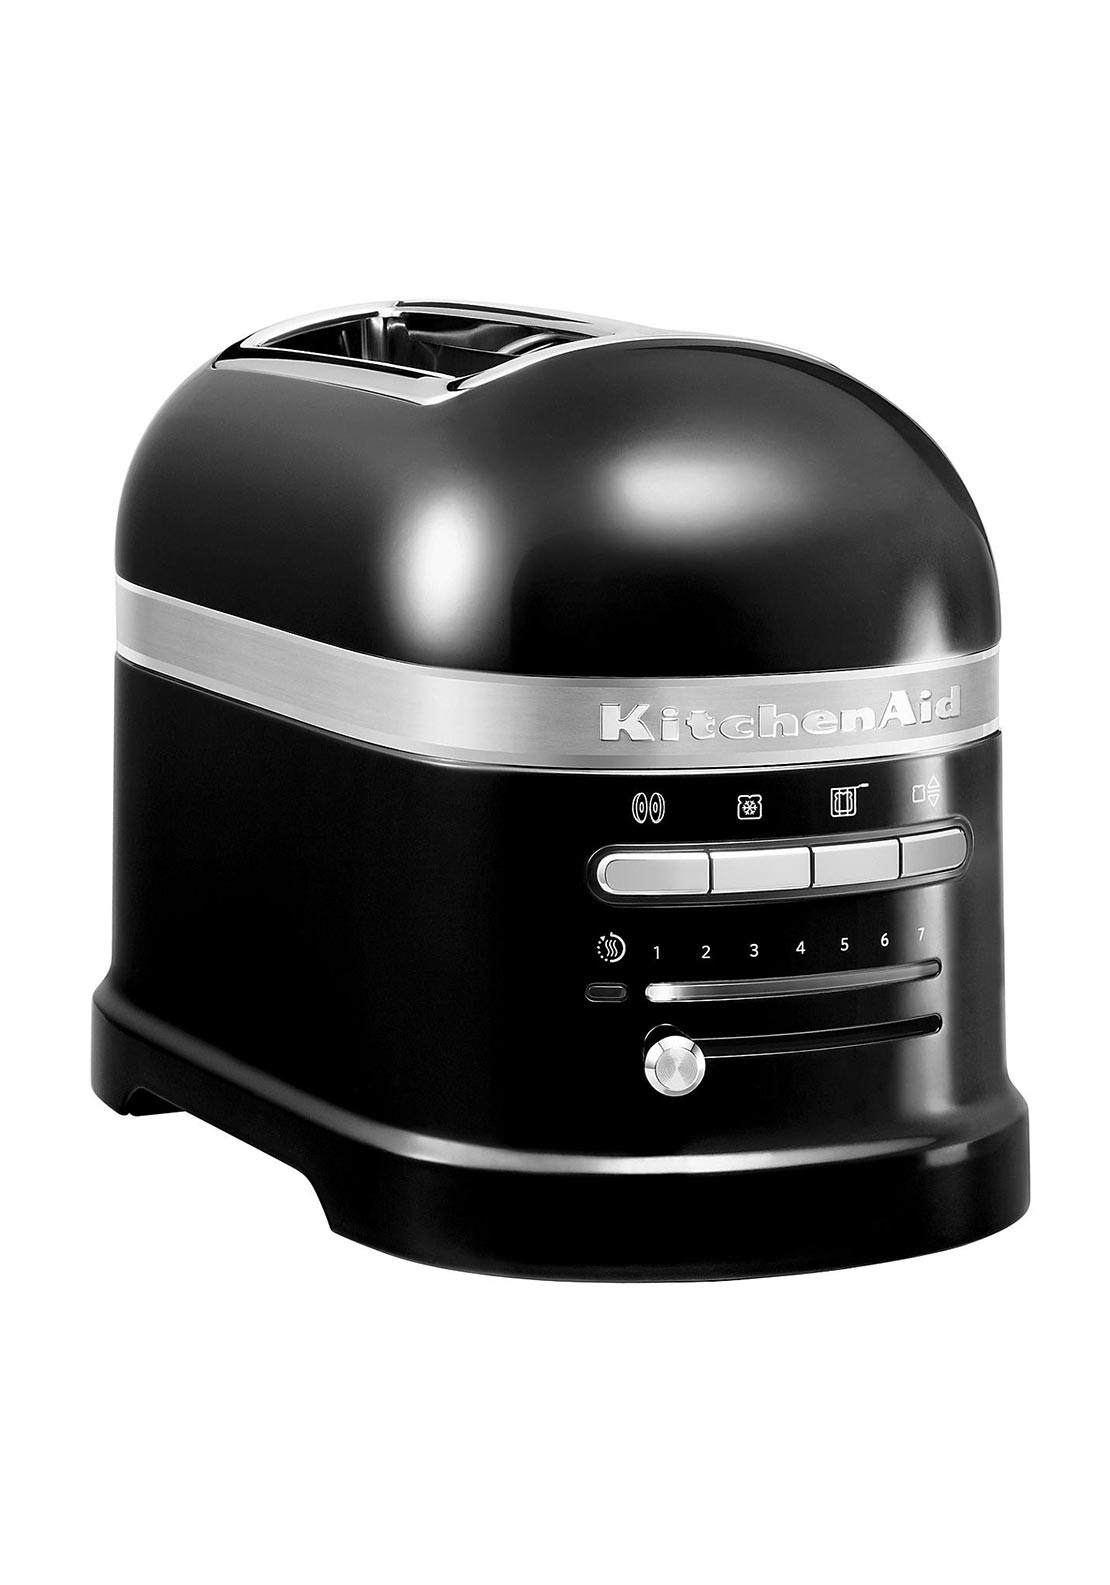 KitchenAid Artisan Two Slice Toaster, Onyx Black